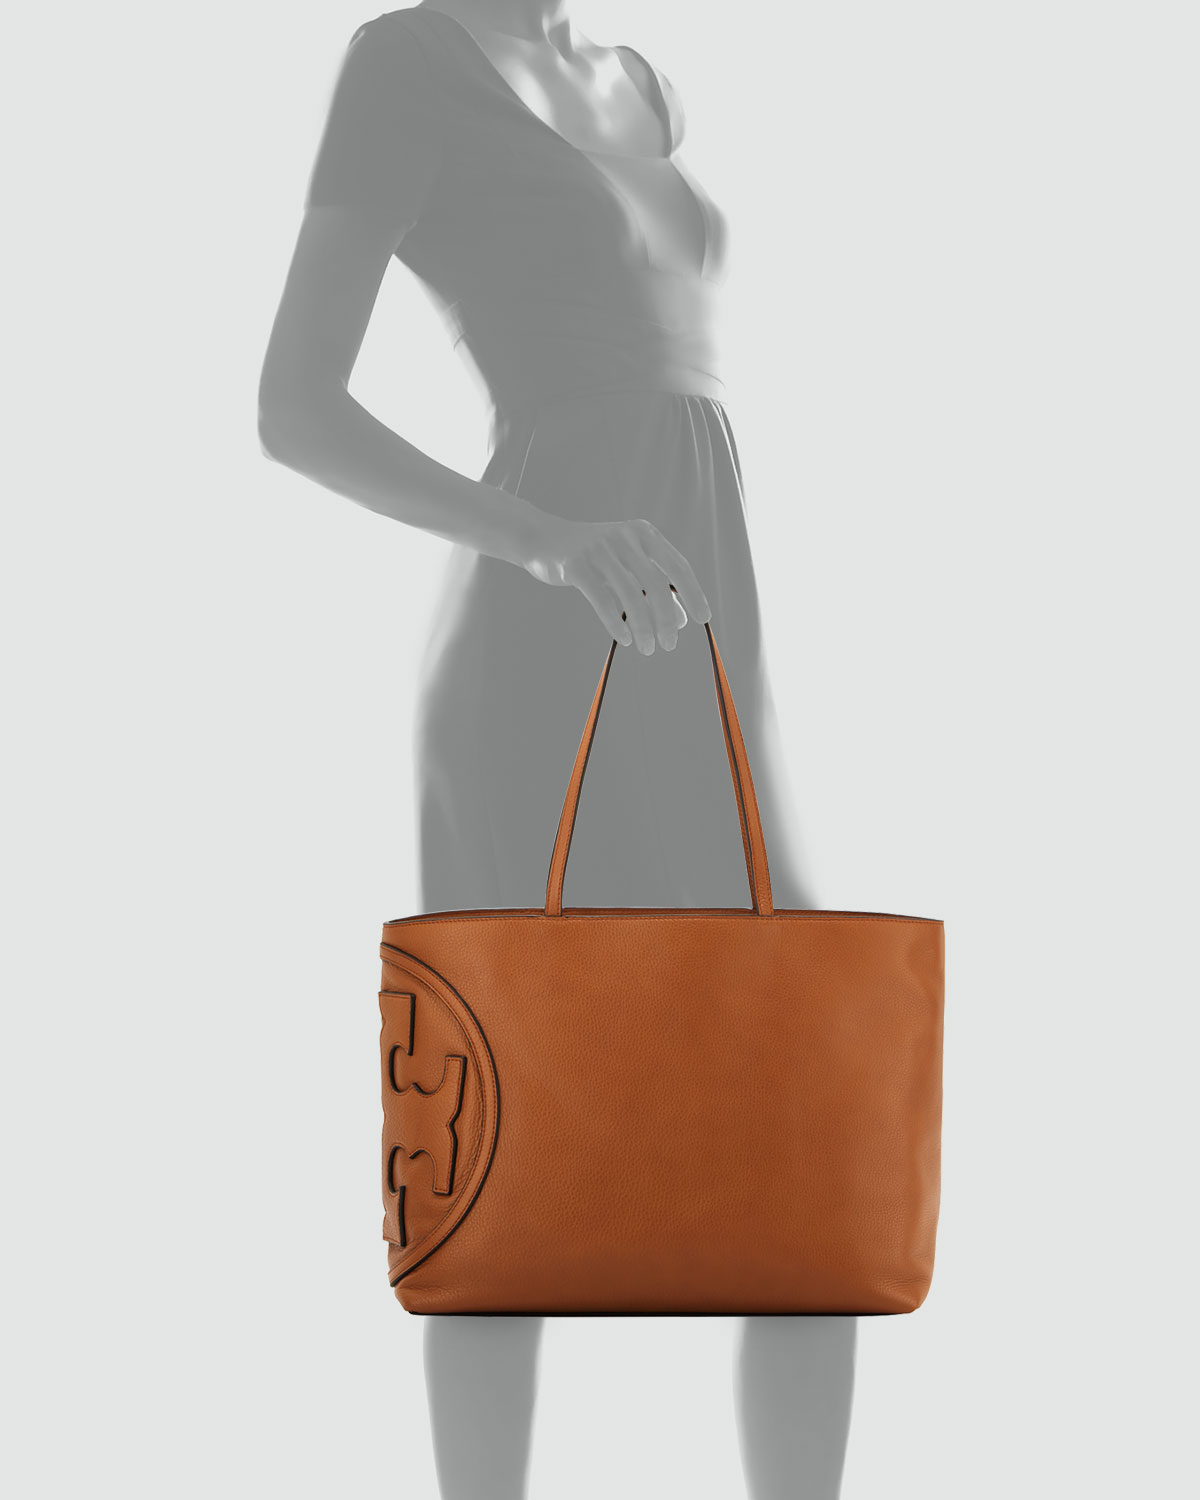 Lyst - Tory Burch All T East-West Leather Tote in Brown 0aa7a91ef351